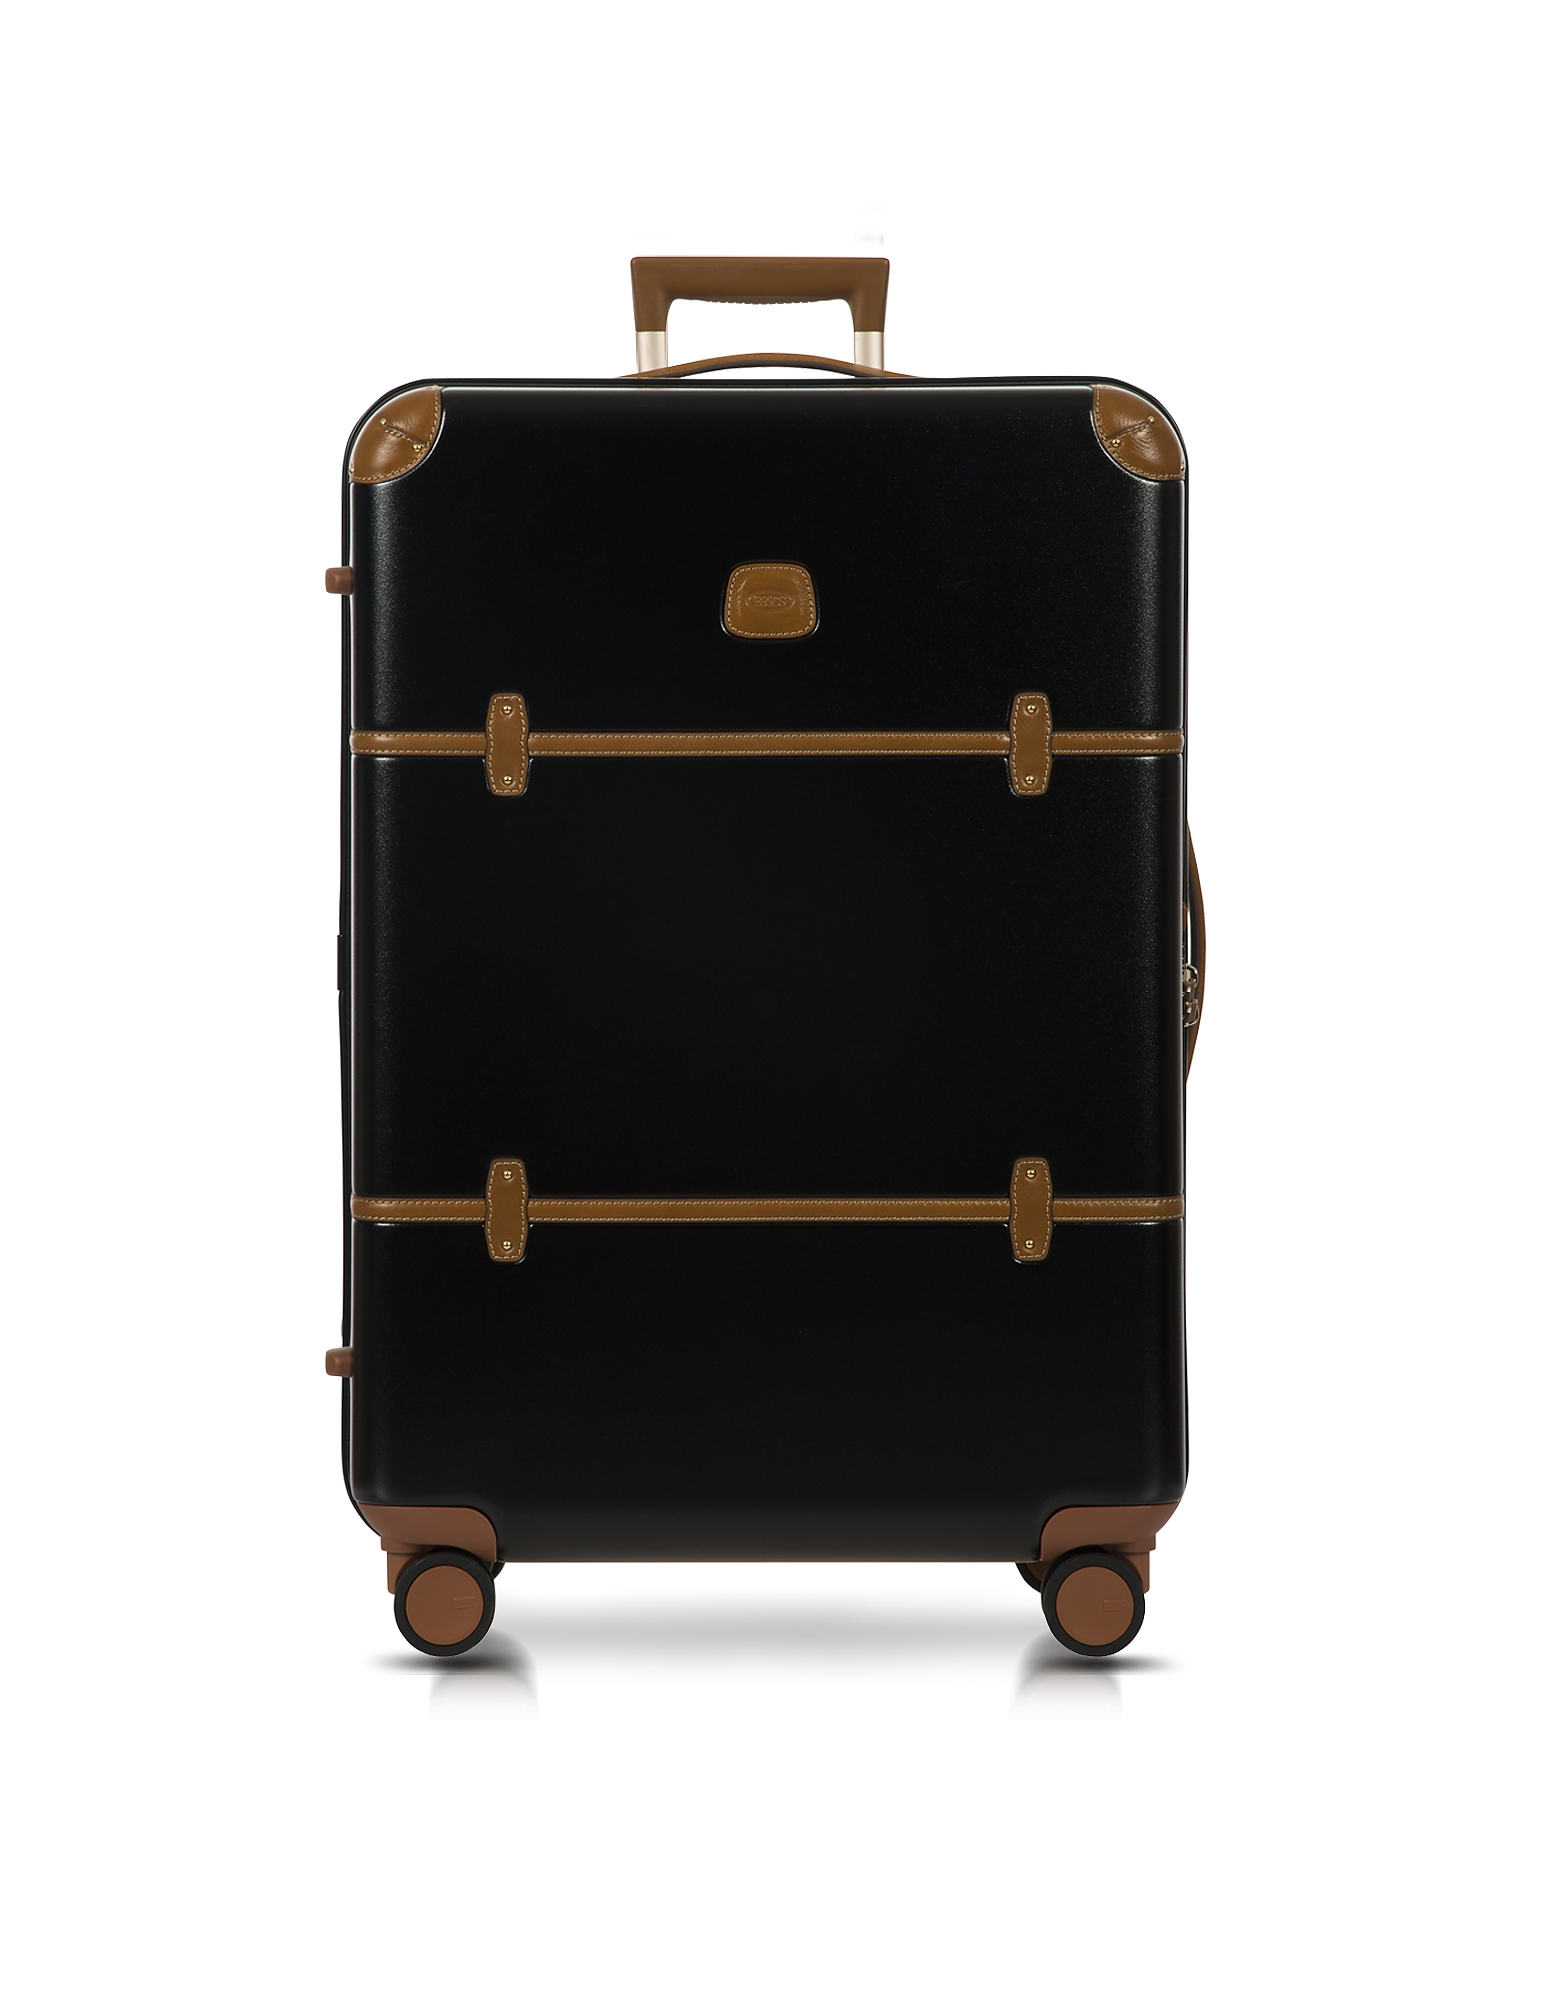 Bric's Travel Bags, Bellagio V2.0 30 Black-Tobacco Spinner Trunk